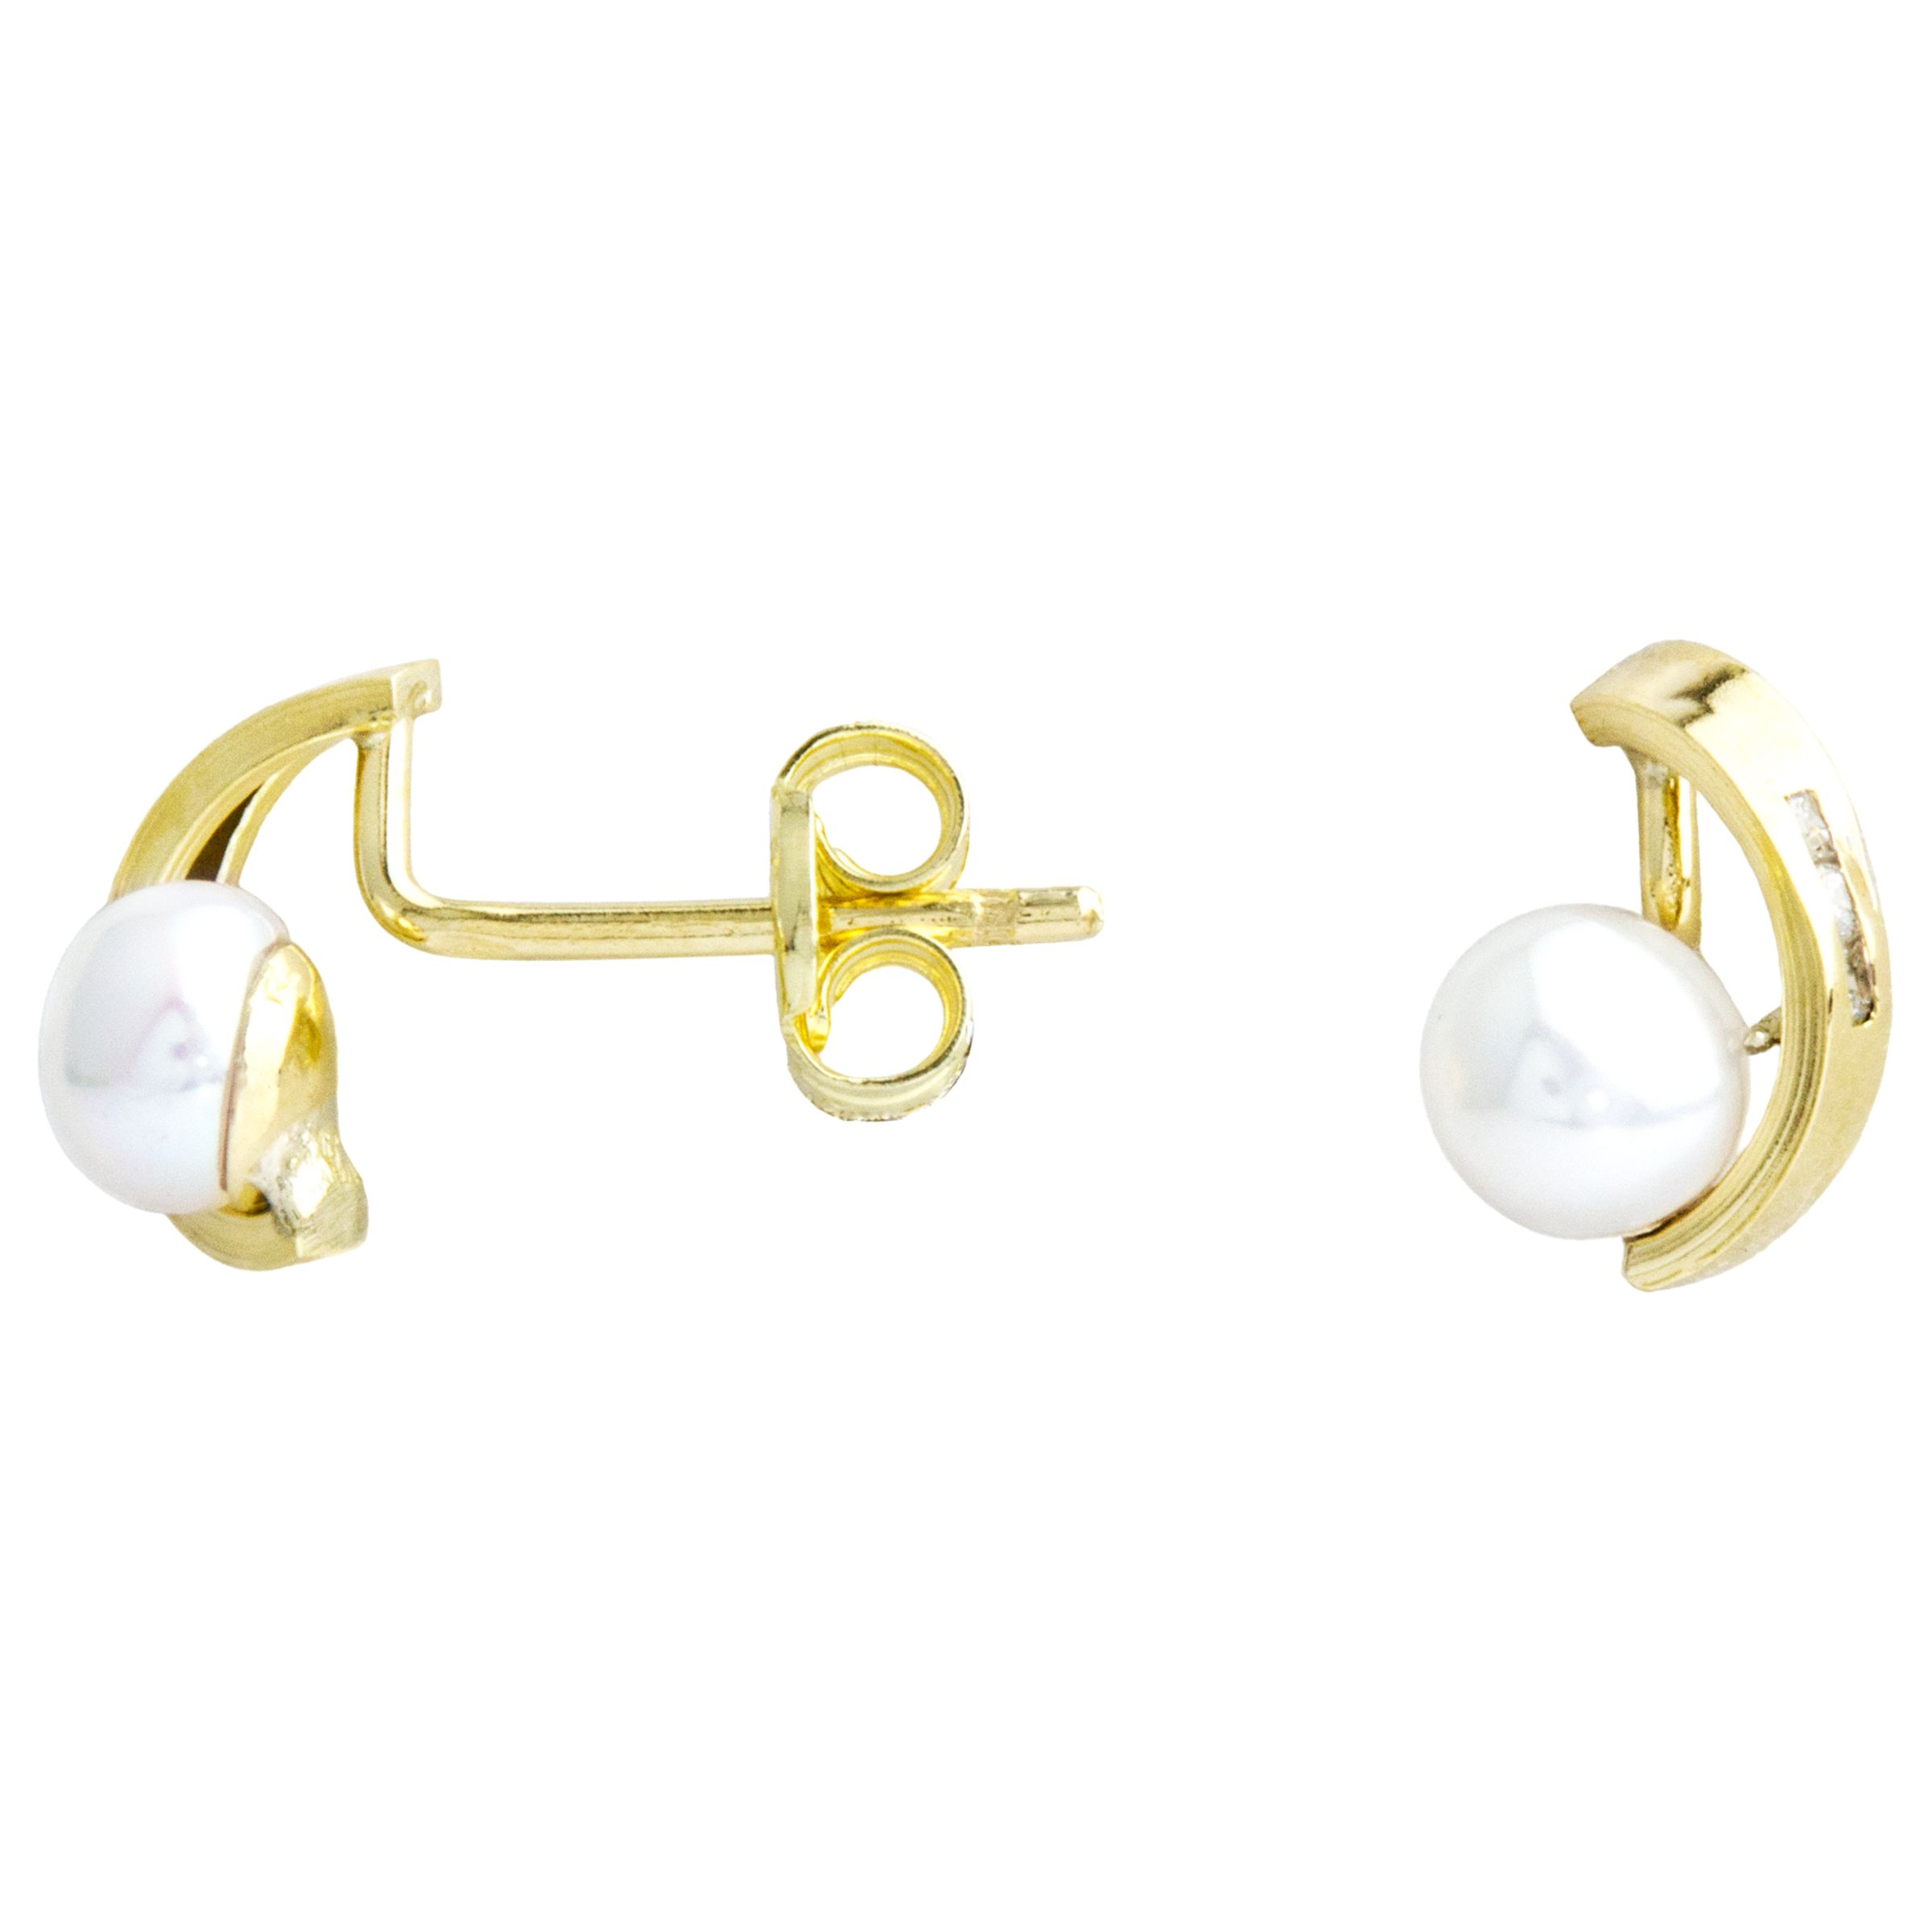 A B Davis A B Davis 9ct Gold Bow Pearl and Cubic Zirconia Stud Earrings, White